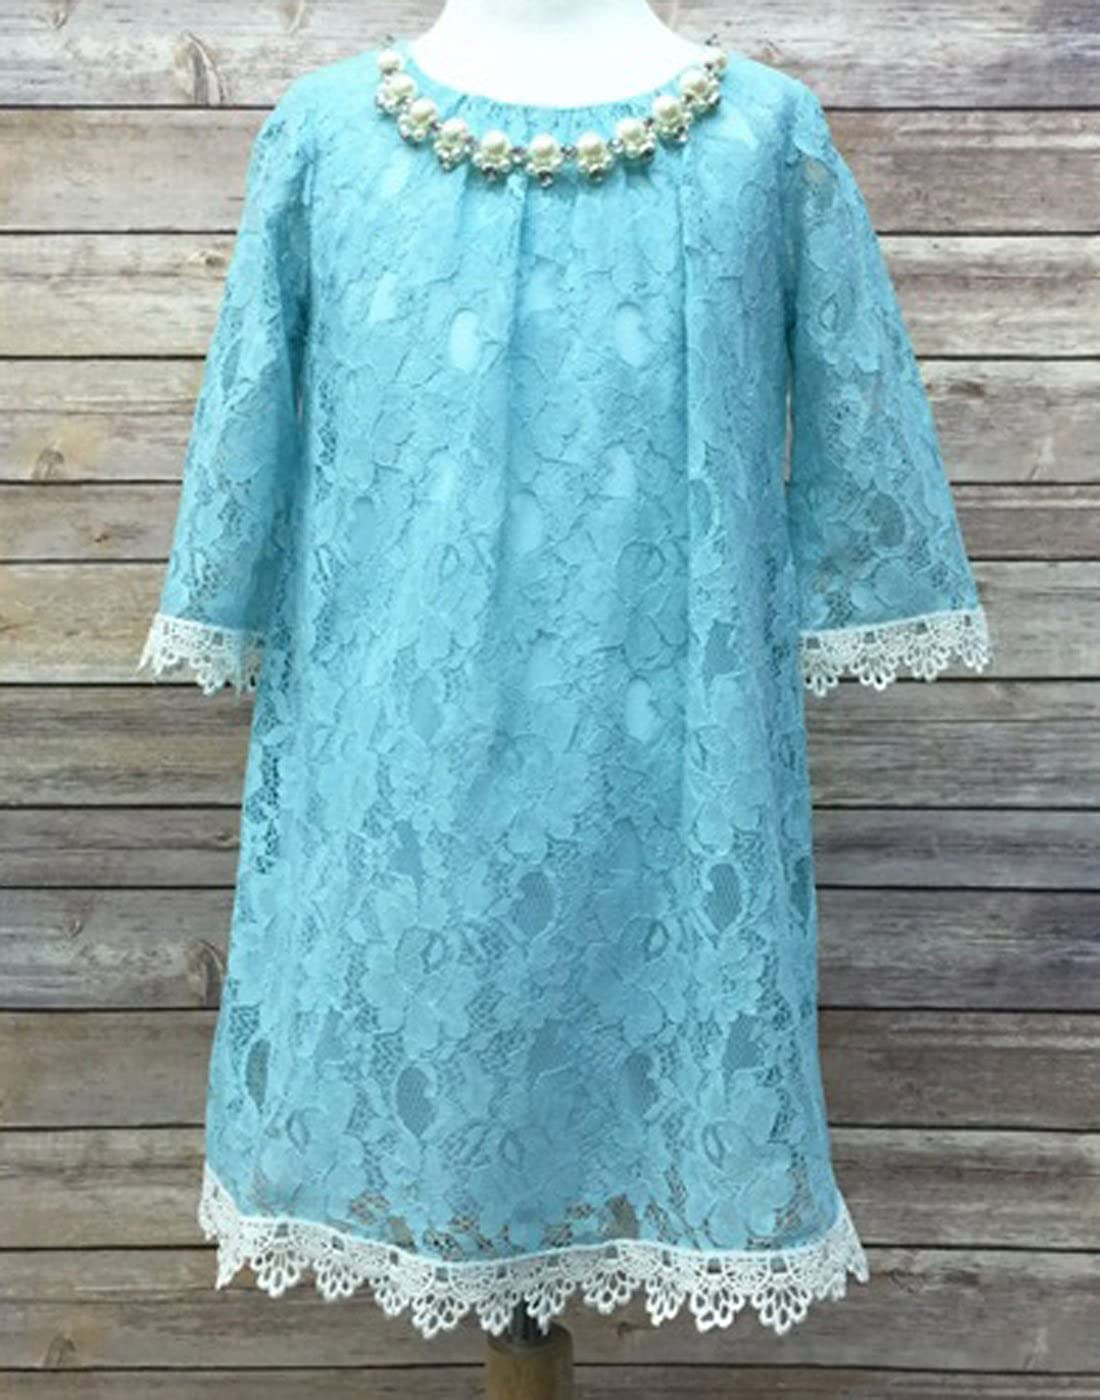 Yaya Fairies Efavormart Flower Girl Dress Floral Lace Dress with a Pearl Necklace Wedding Party Dress